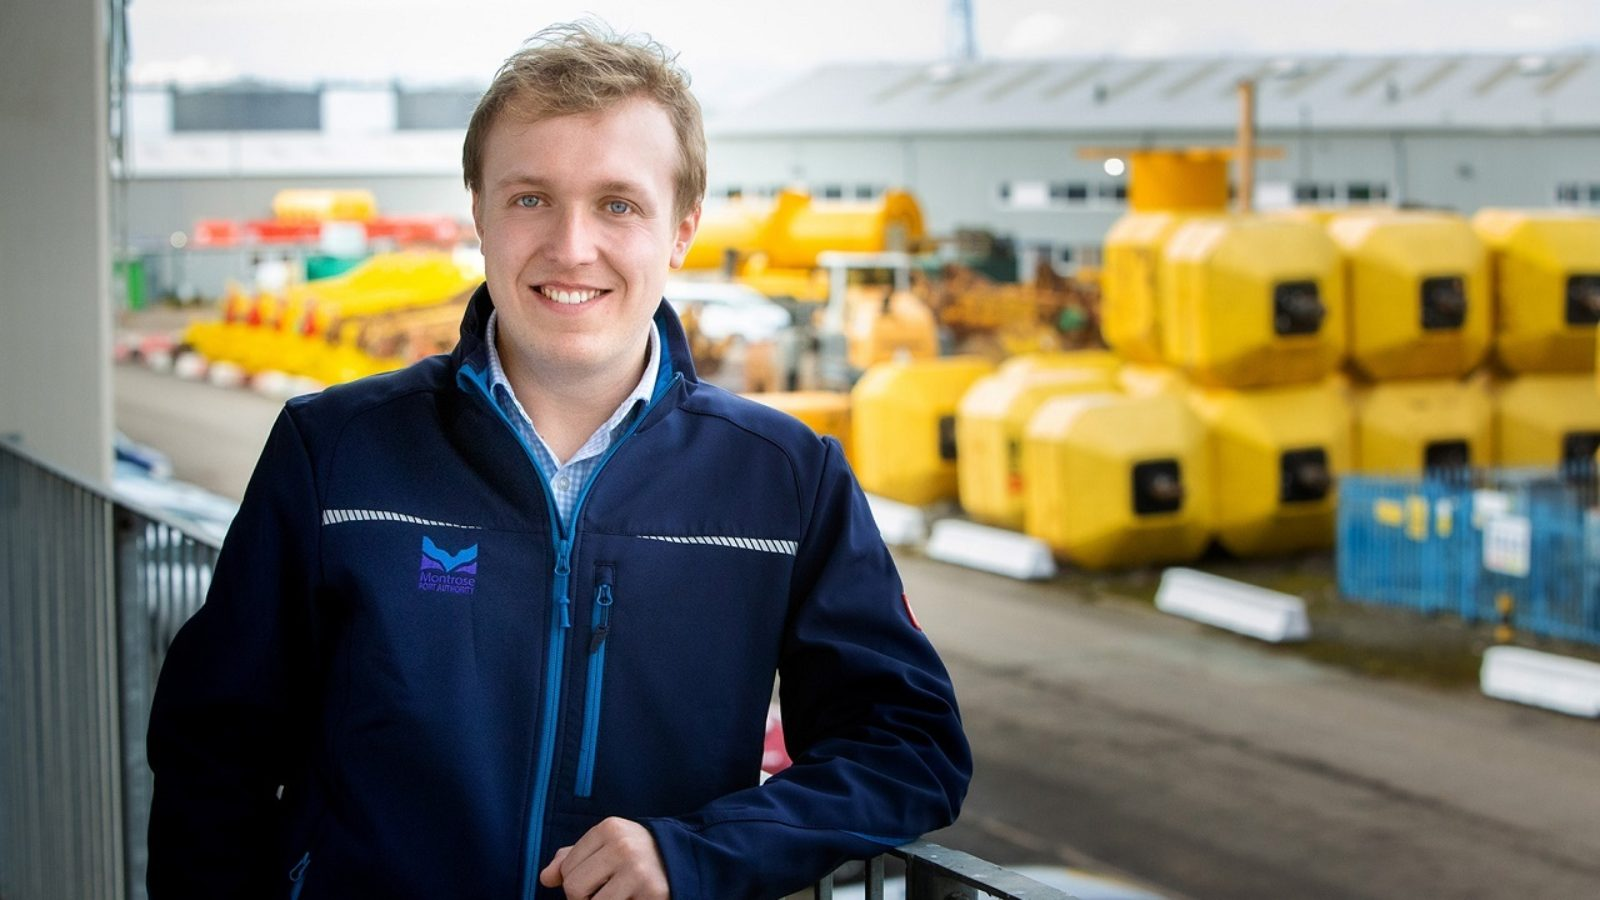 Montrose Port at the forefront of circular economy effort